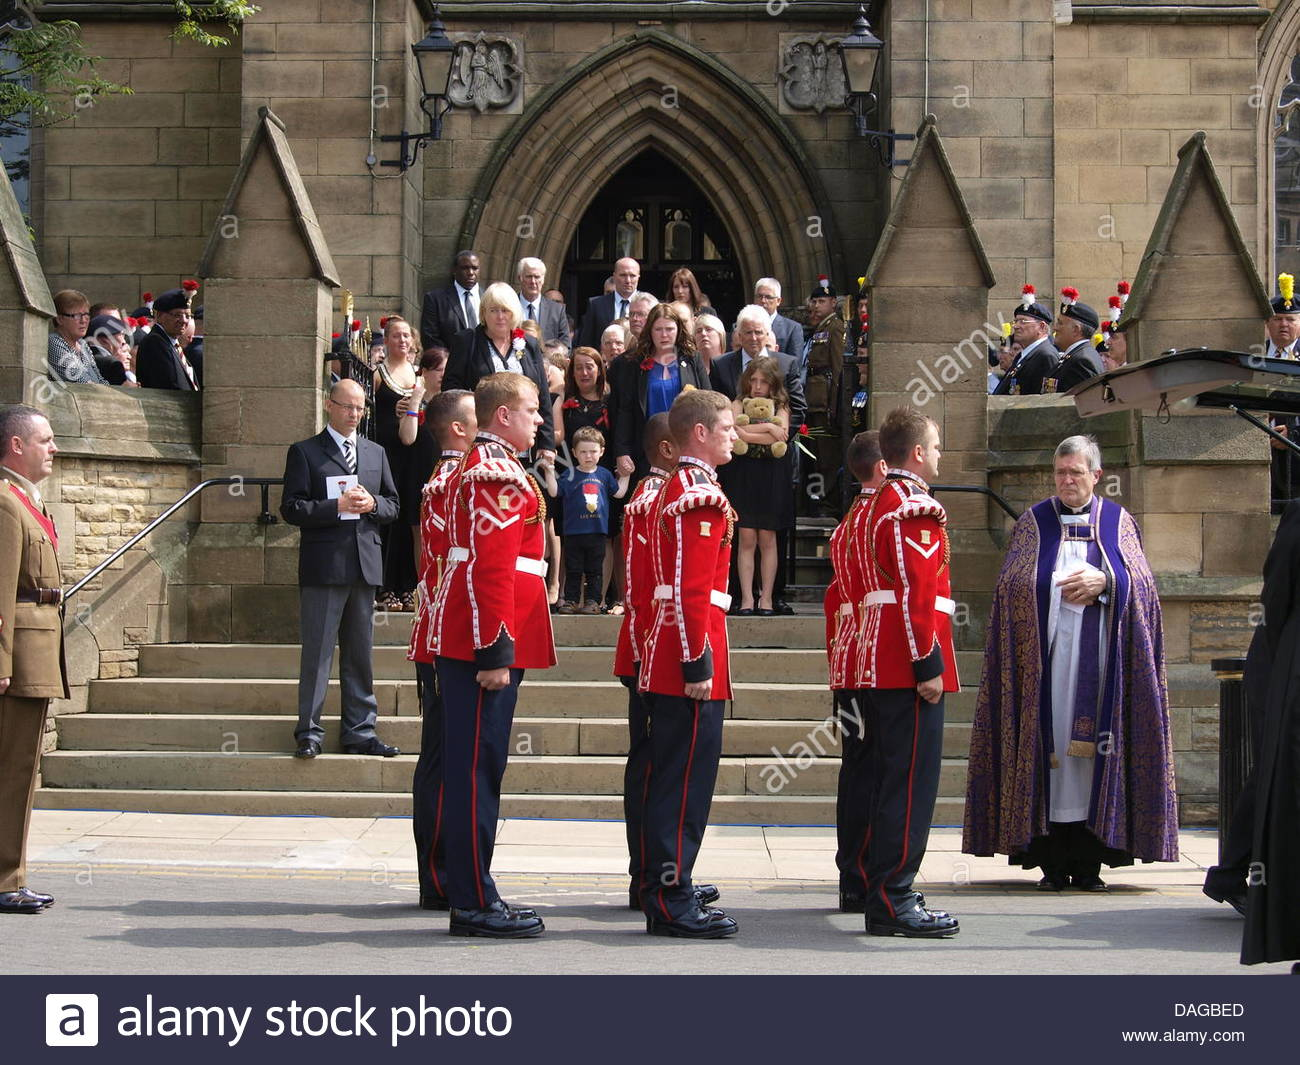 10 X Dagbed : Royal fusilier stock photos & royal fusilier stock images page 3